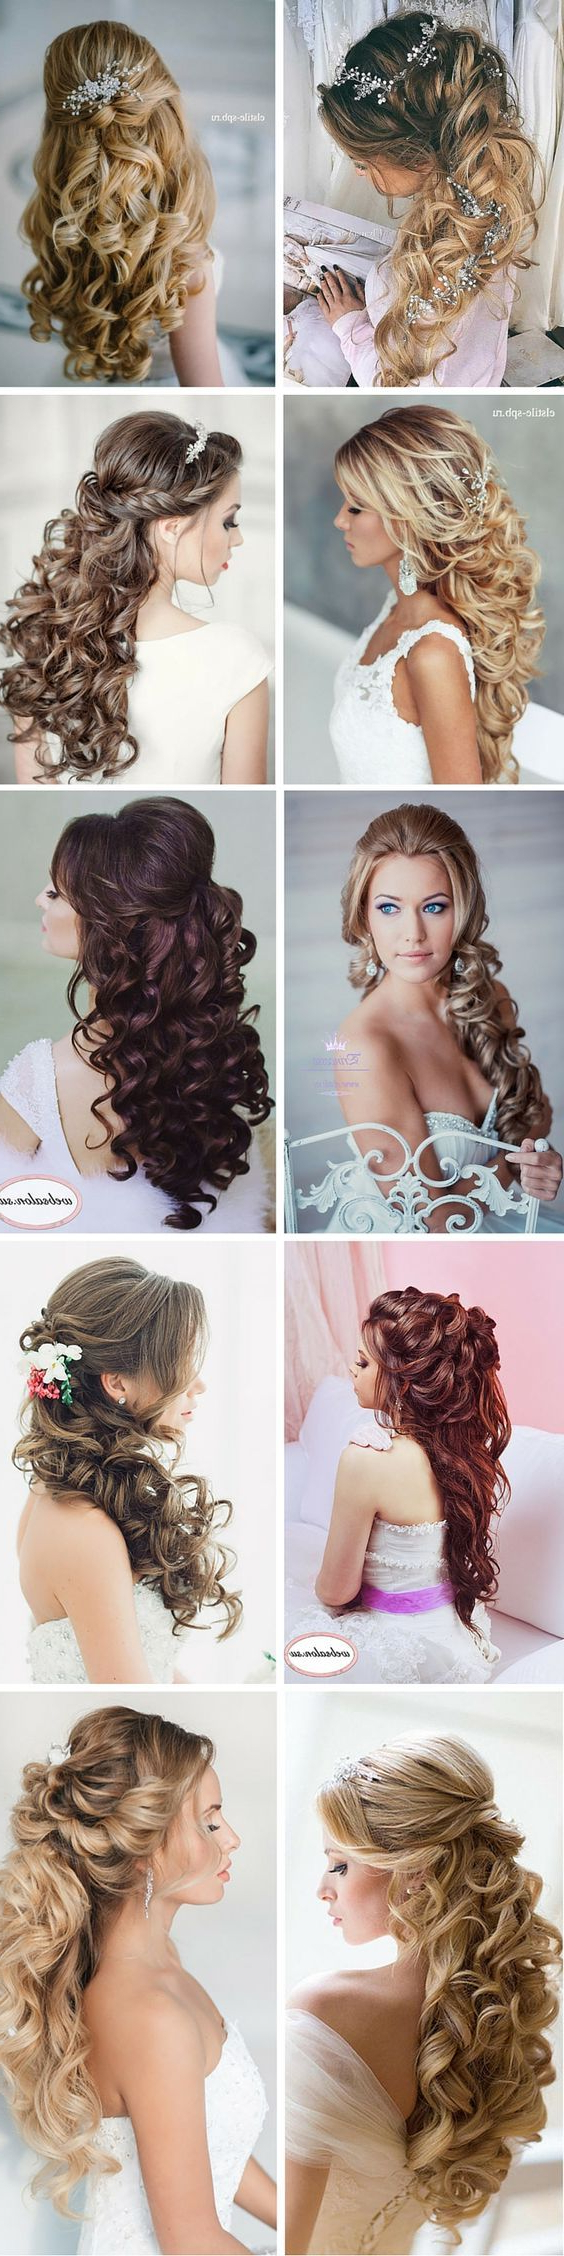 250 Bridal Wedding Hairstyles For Long Hair That Will Inspire Throughout Most Popular Large Curl Updos For Brides (View 3 of 20)